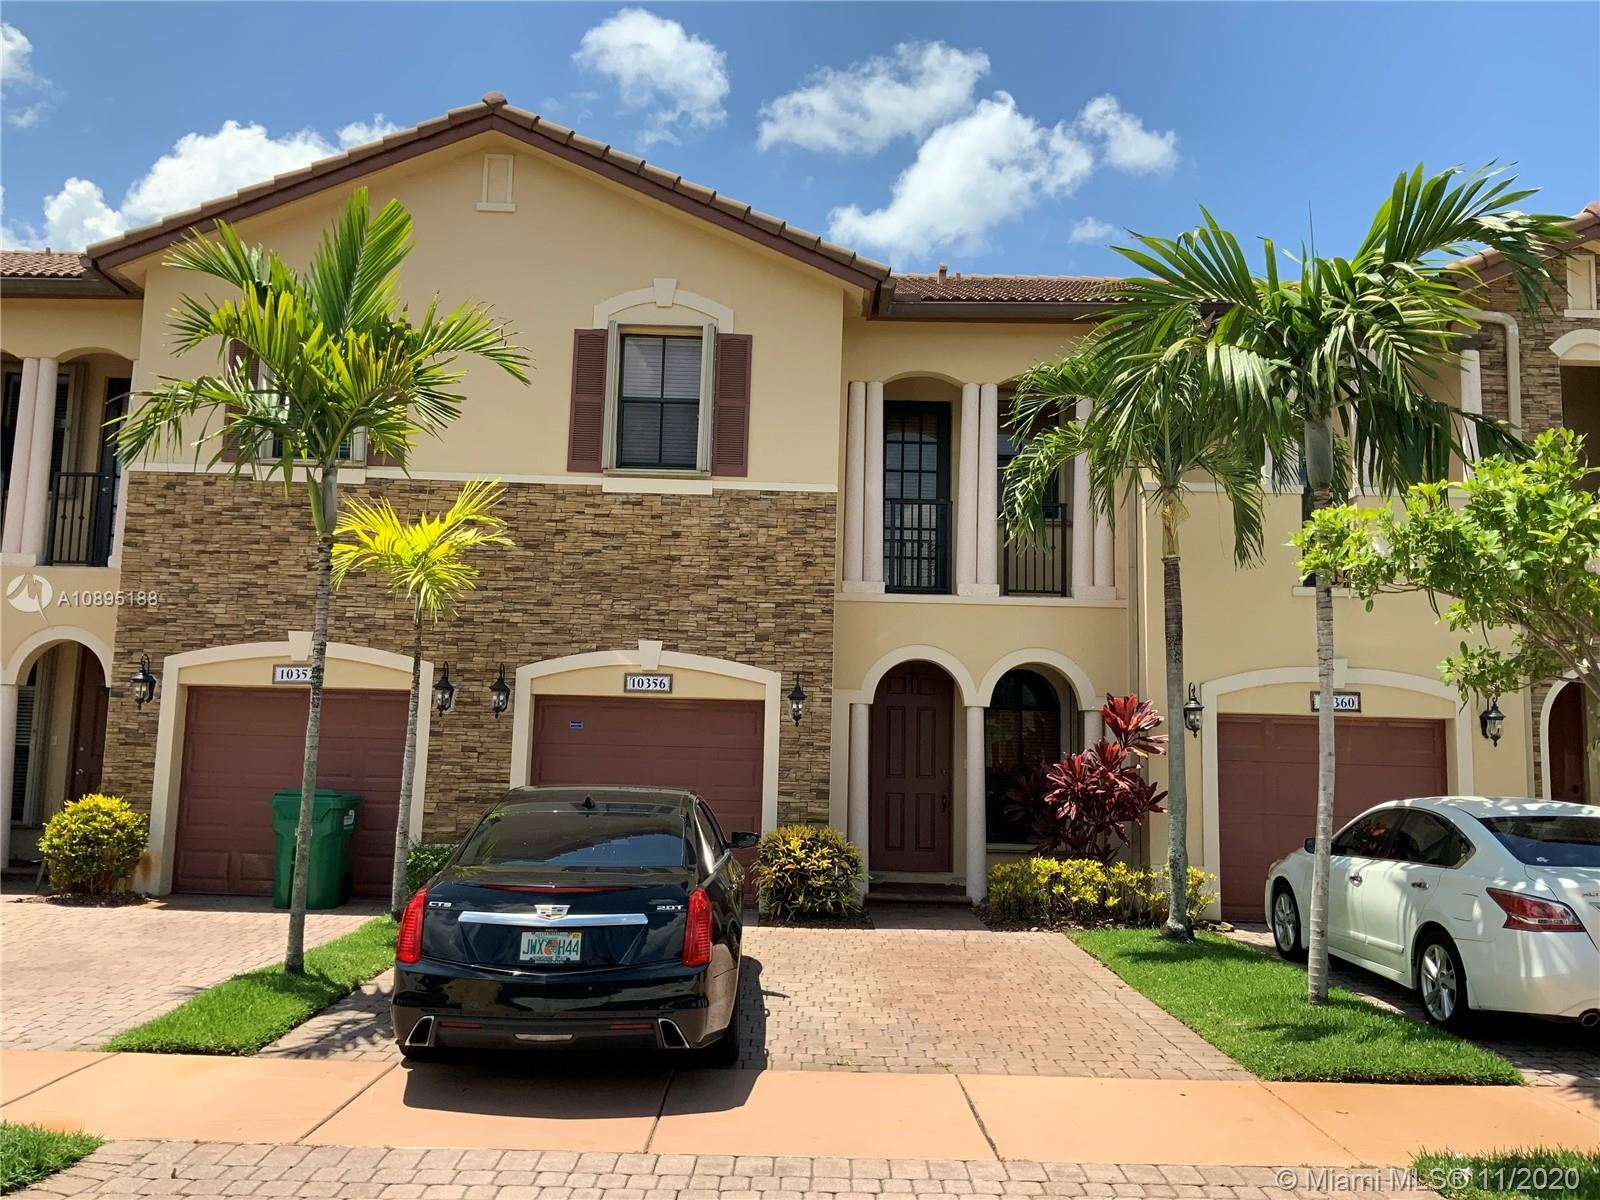 10356 NW 31st Ter #0, Doral, FL 33172 - #: A10895188